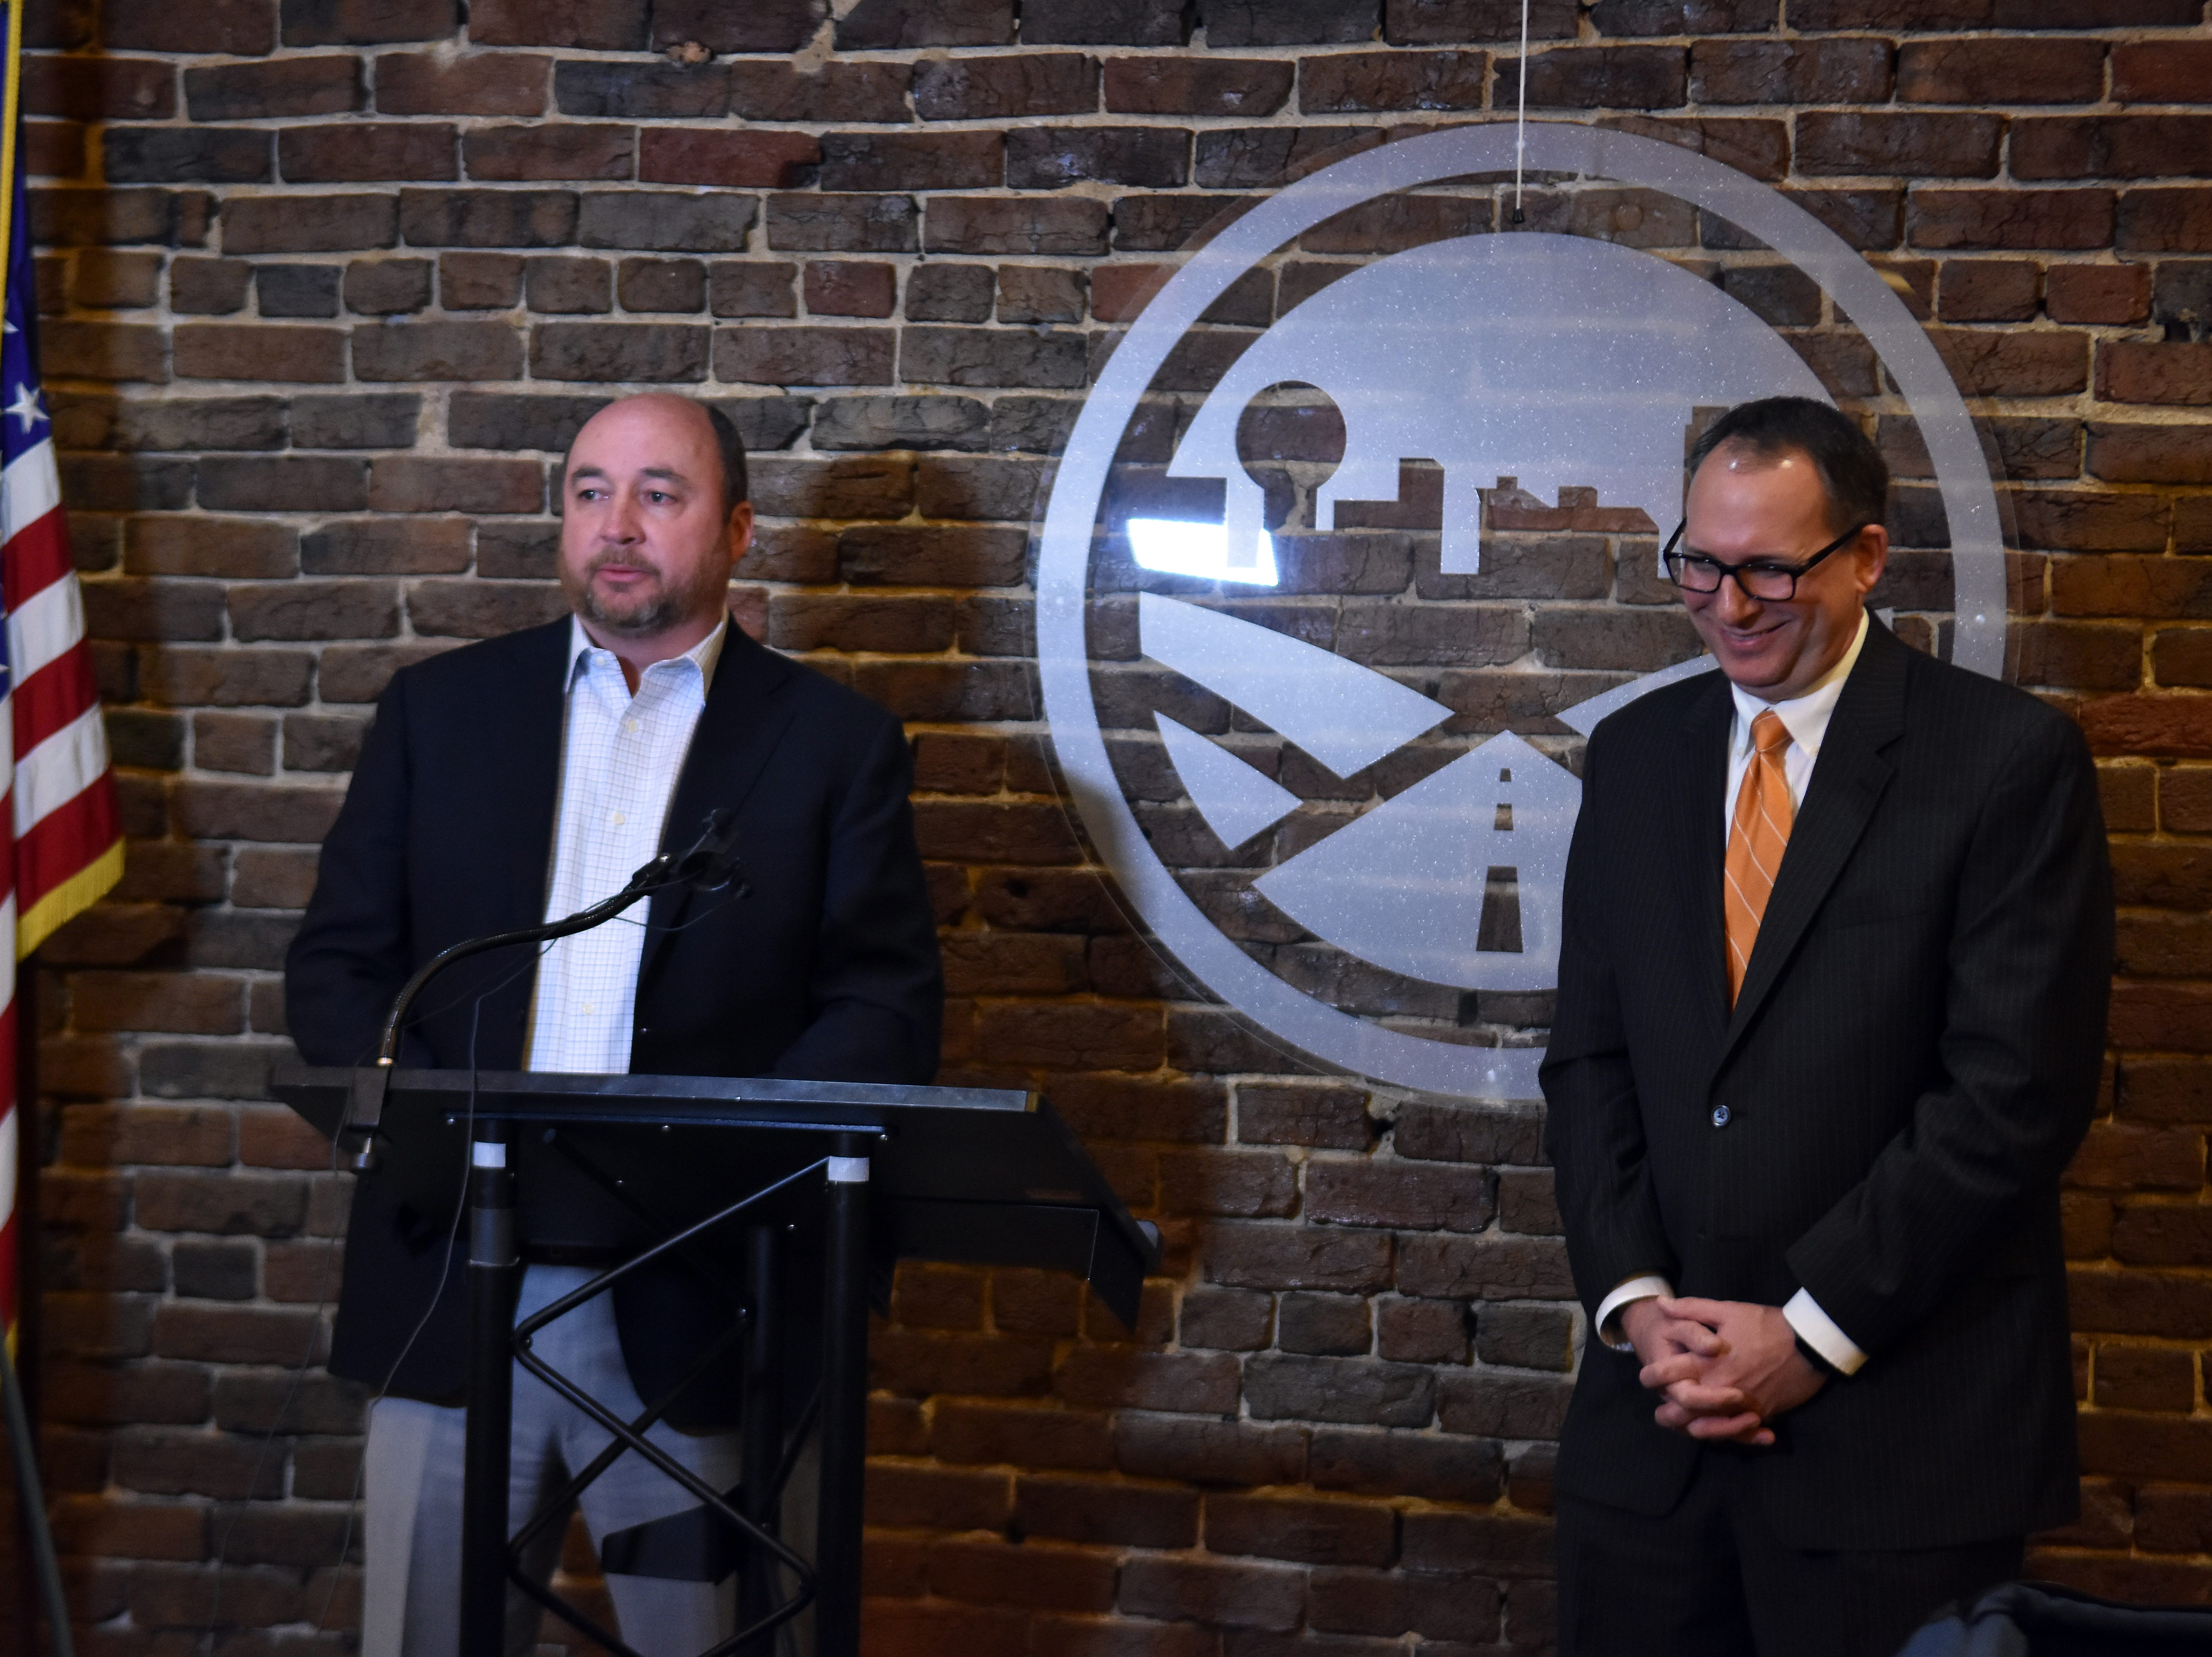 Terry Turner, chair of the Knoxville Chamber Board of Directors, left, answers questions with Mike Odom, the new Chamber CEO during a press conference on Tuesday, March 16.